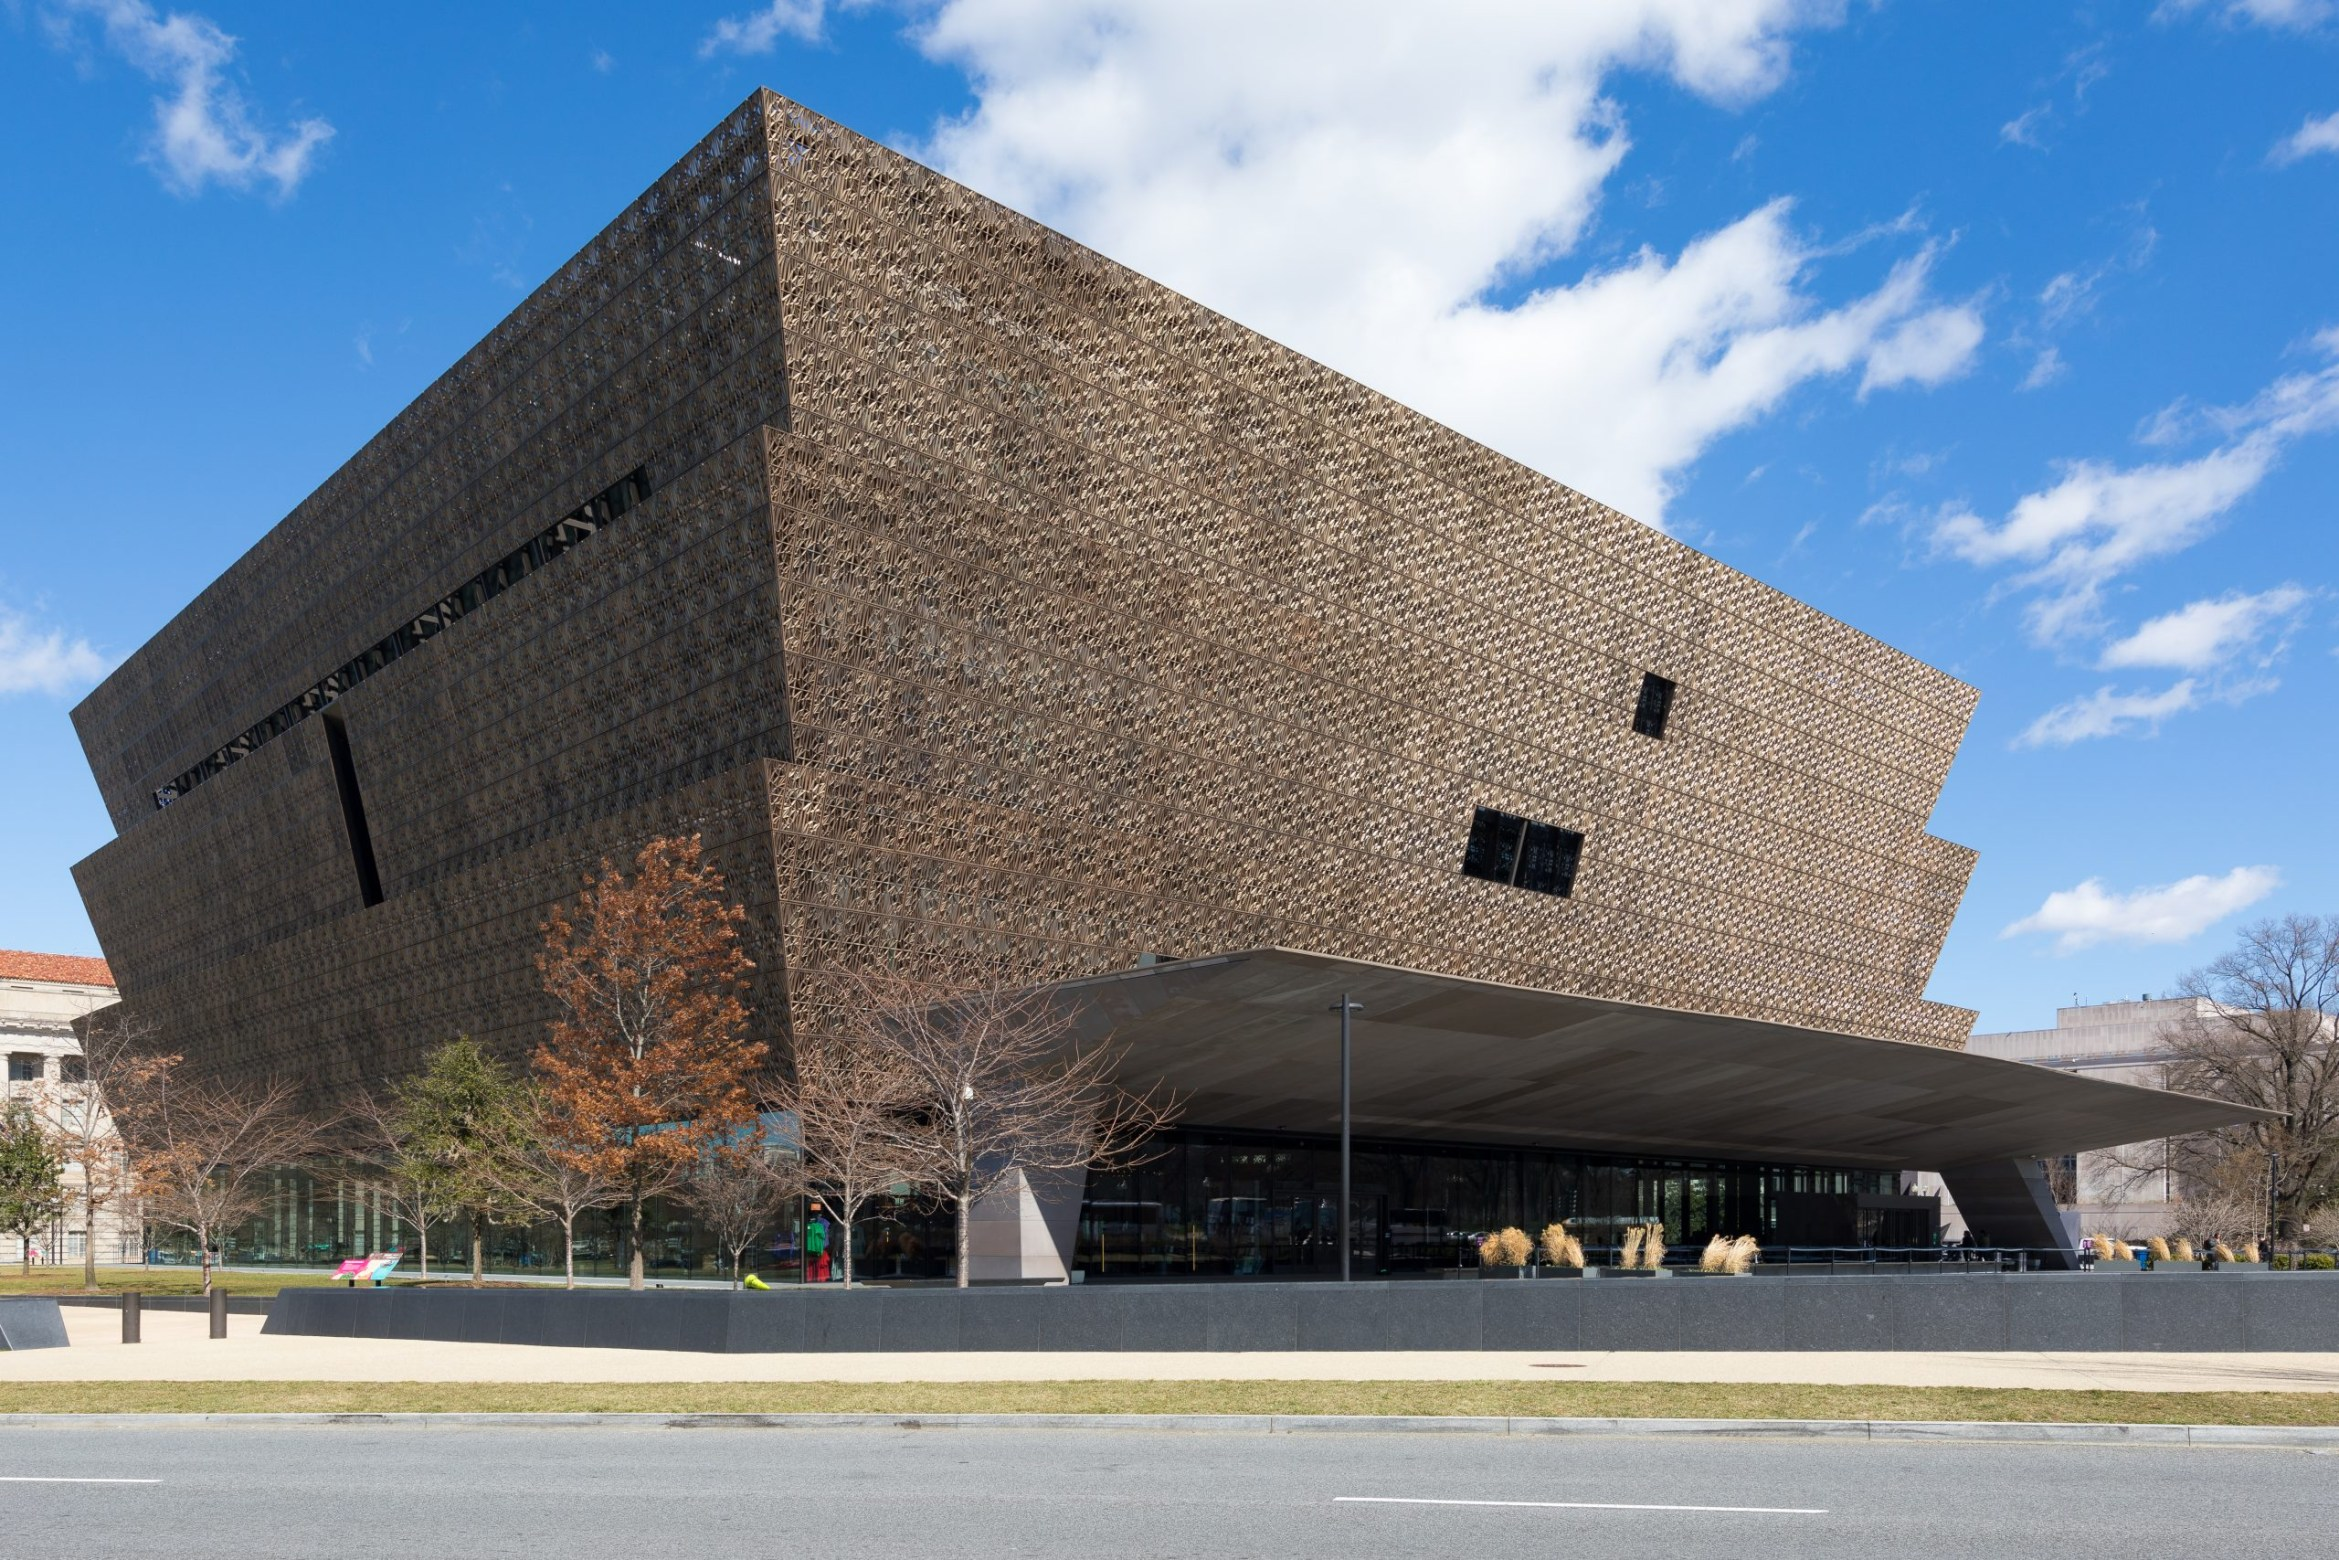 The Smithsonian's National Museum of African American History and Culture in Washington, DC (via Wikimedia Commons)